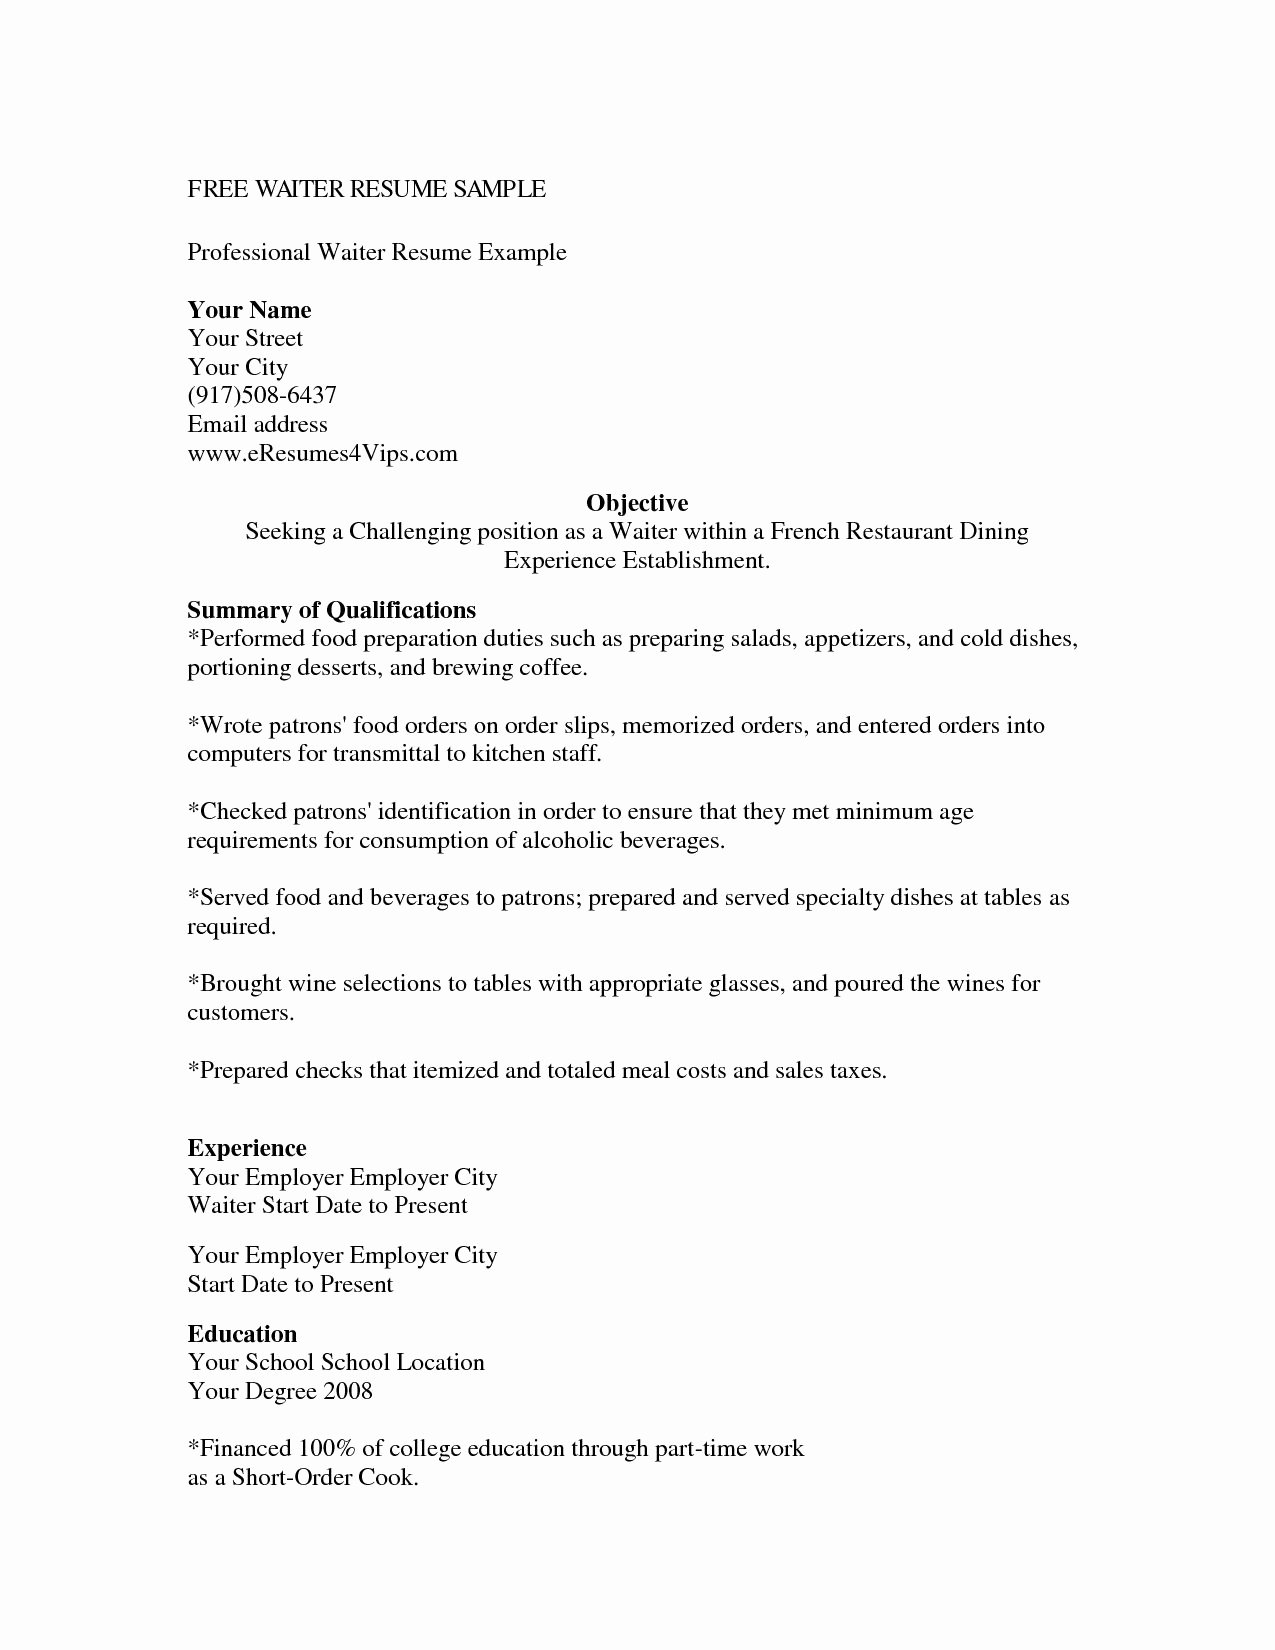 Server Cover Letter Examples Awesome Cover Letter Resume for Waitress Position Example within